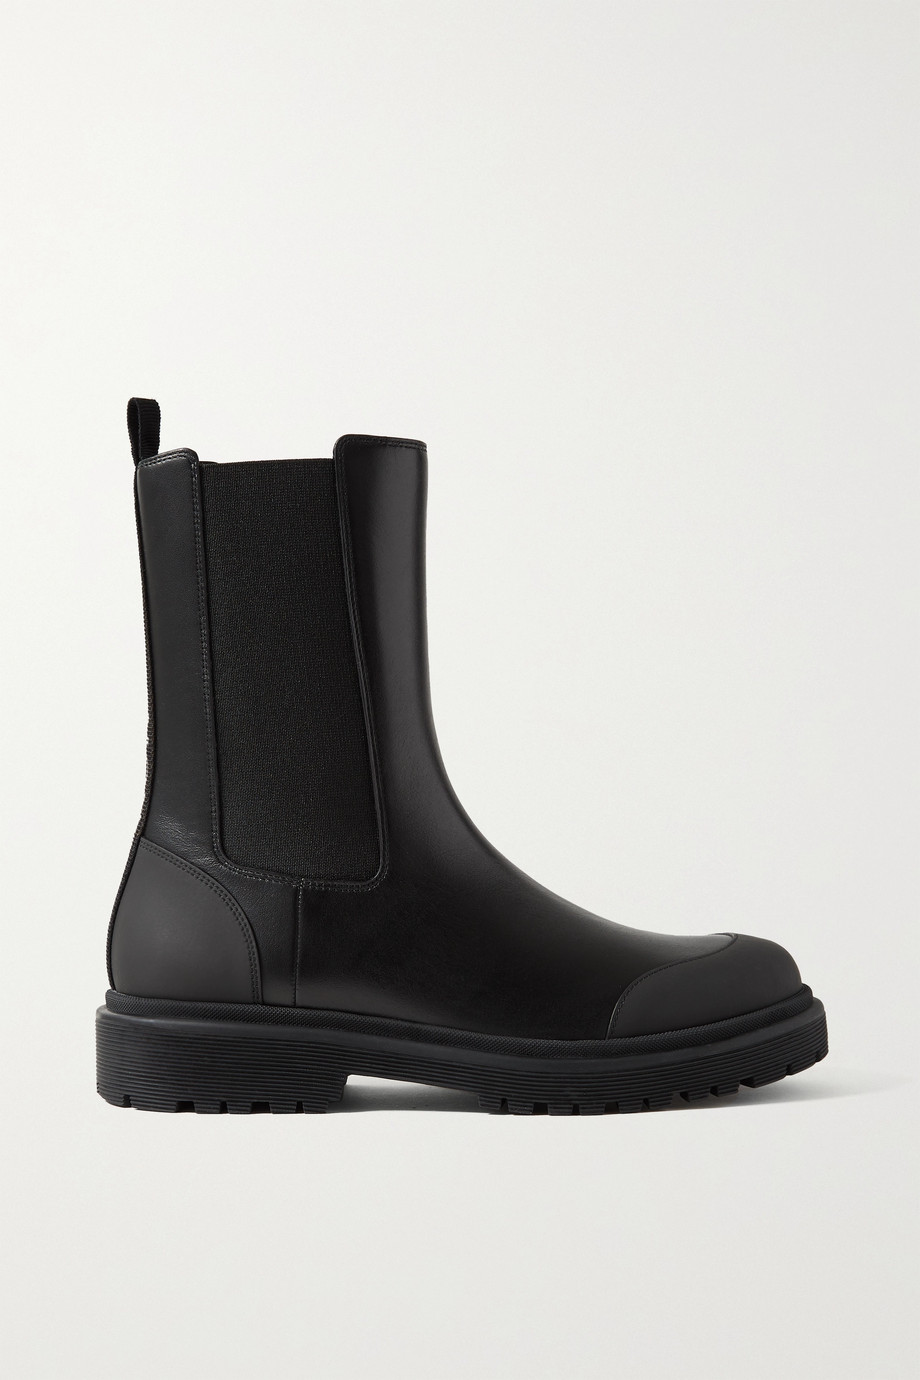 Moncler Patty leather Chelsea boots